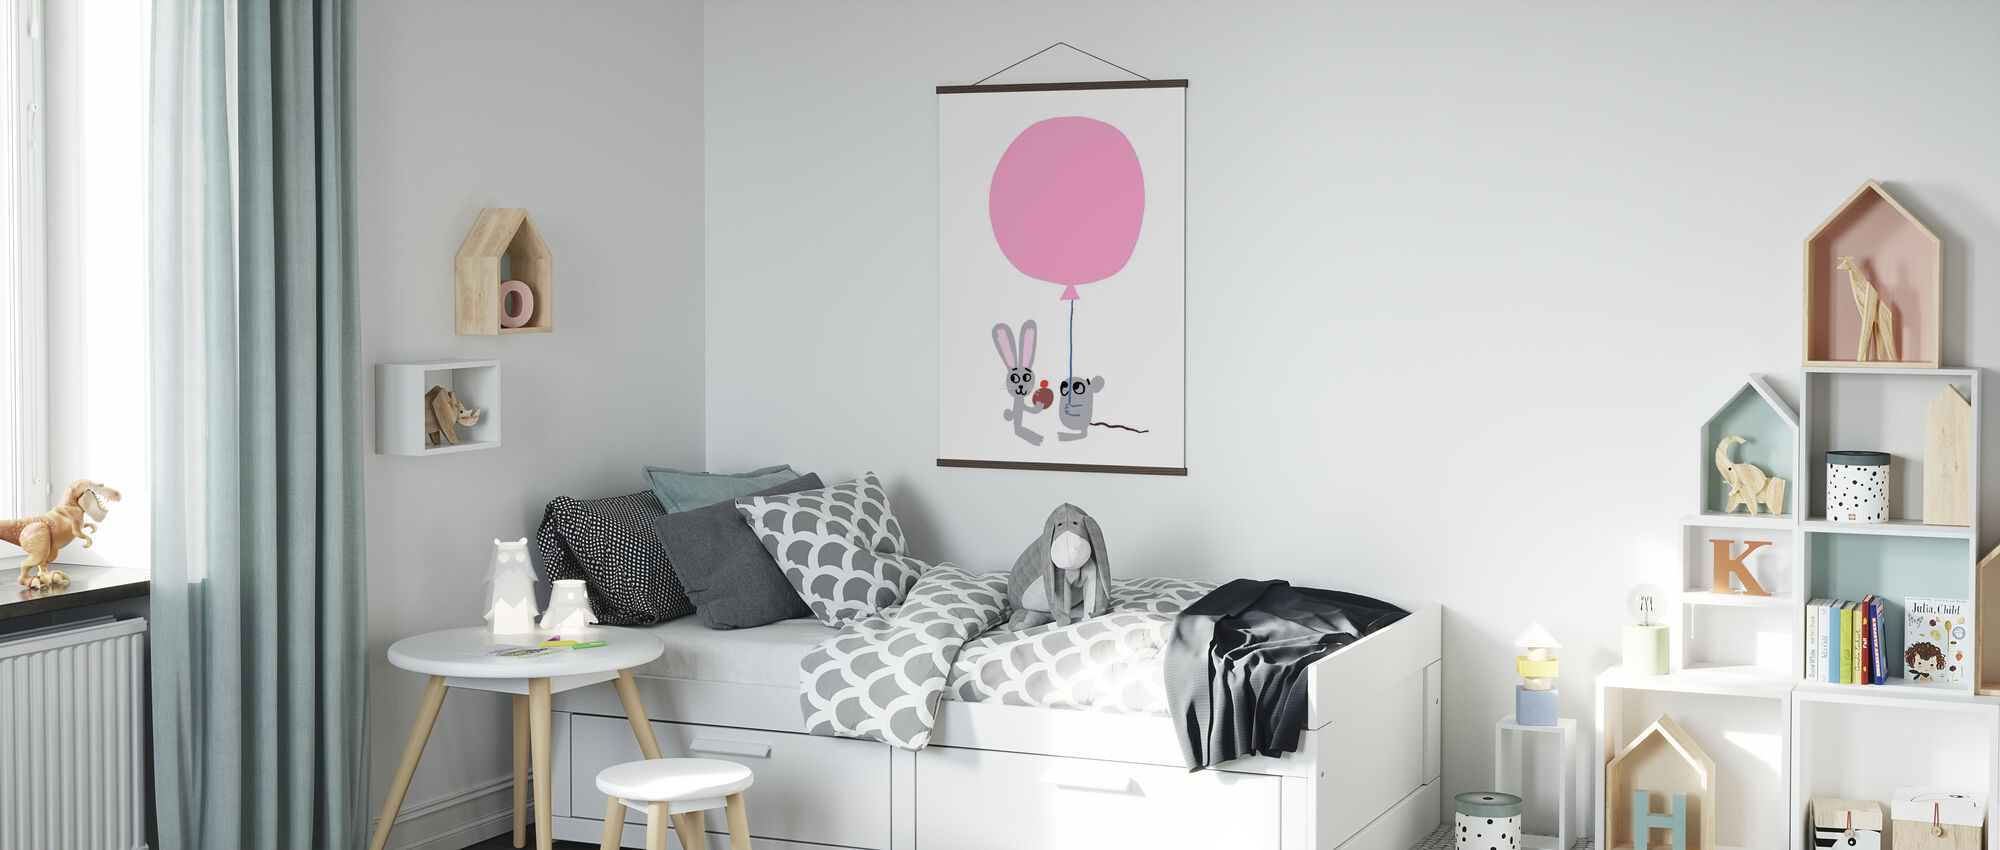 Pink Balloon - Poster - Kids Room